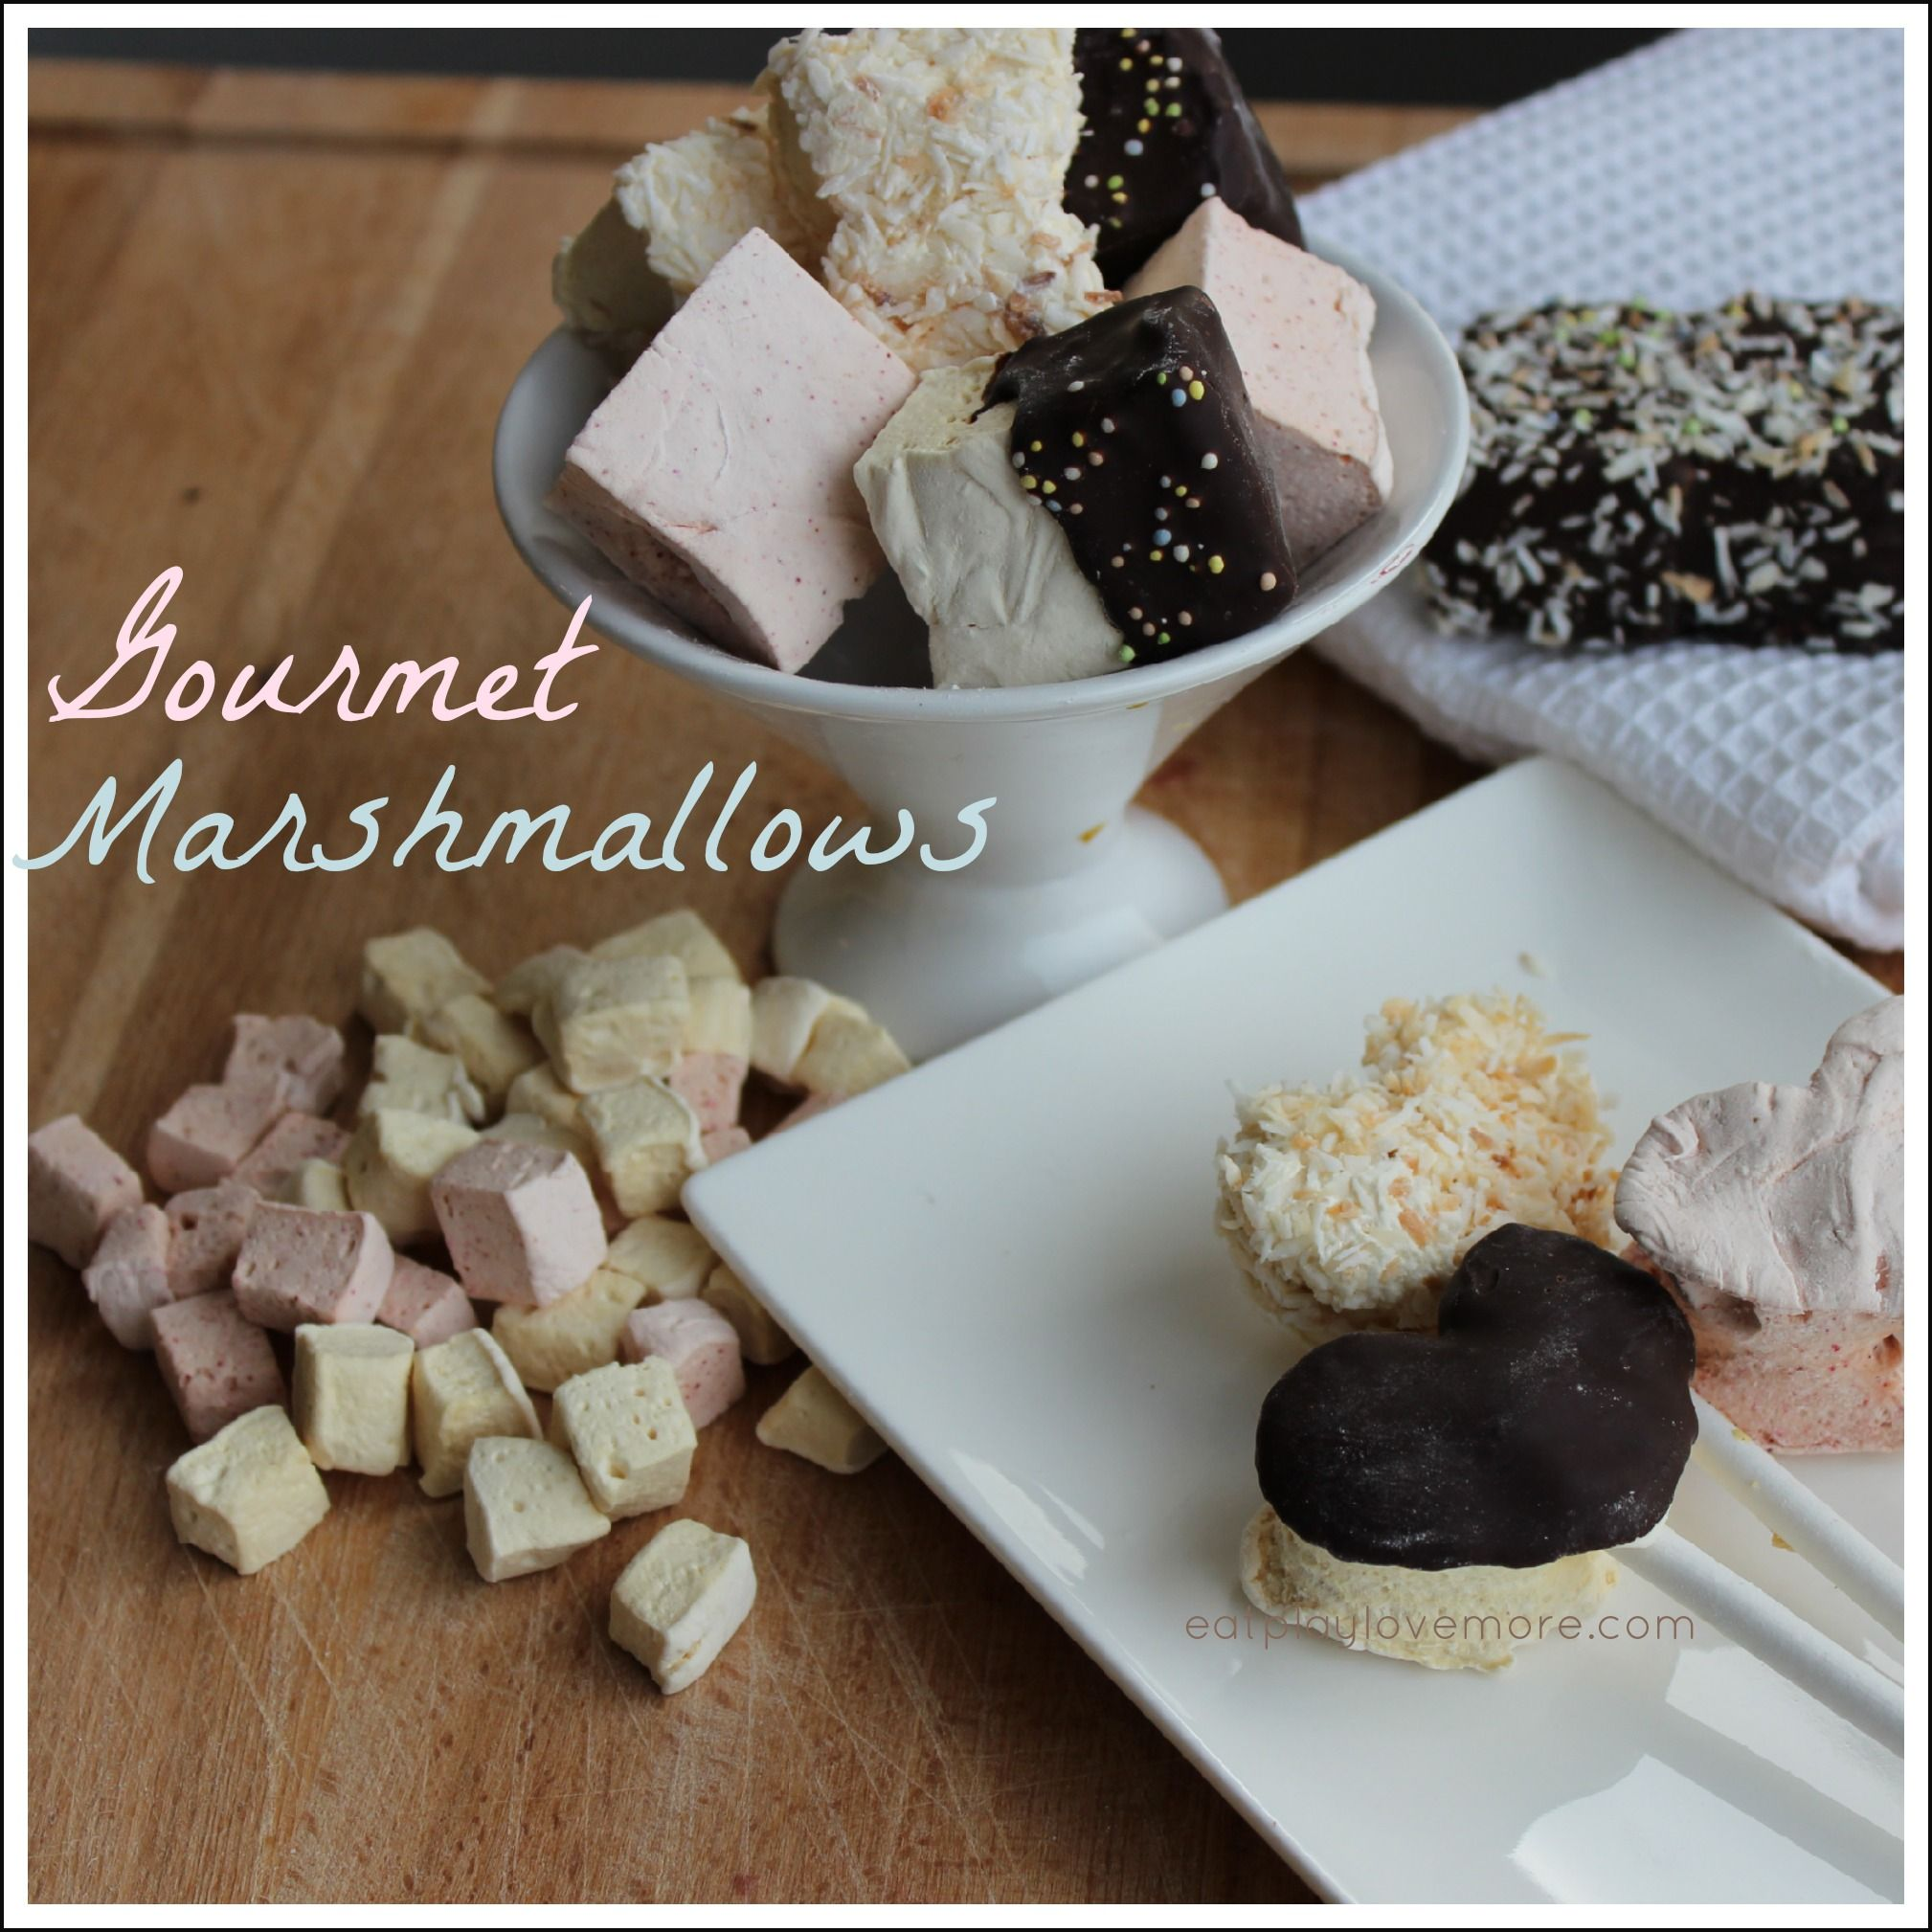 As a real foodie, sometimes you have to let some 'food' from your former life go. I am happy to report that THIS is not one of those times! All together now: marshmallows! marshmallows! marshmallows! YAY! These little soft, squishy, melt in your mouth chunks of heaven make great additions to your homemade hot chocolate… #healthymarshmallows